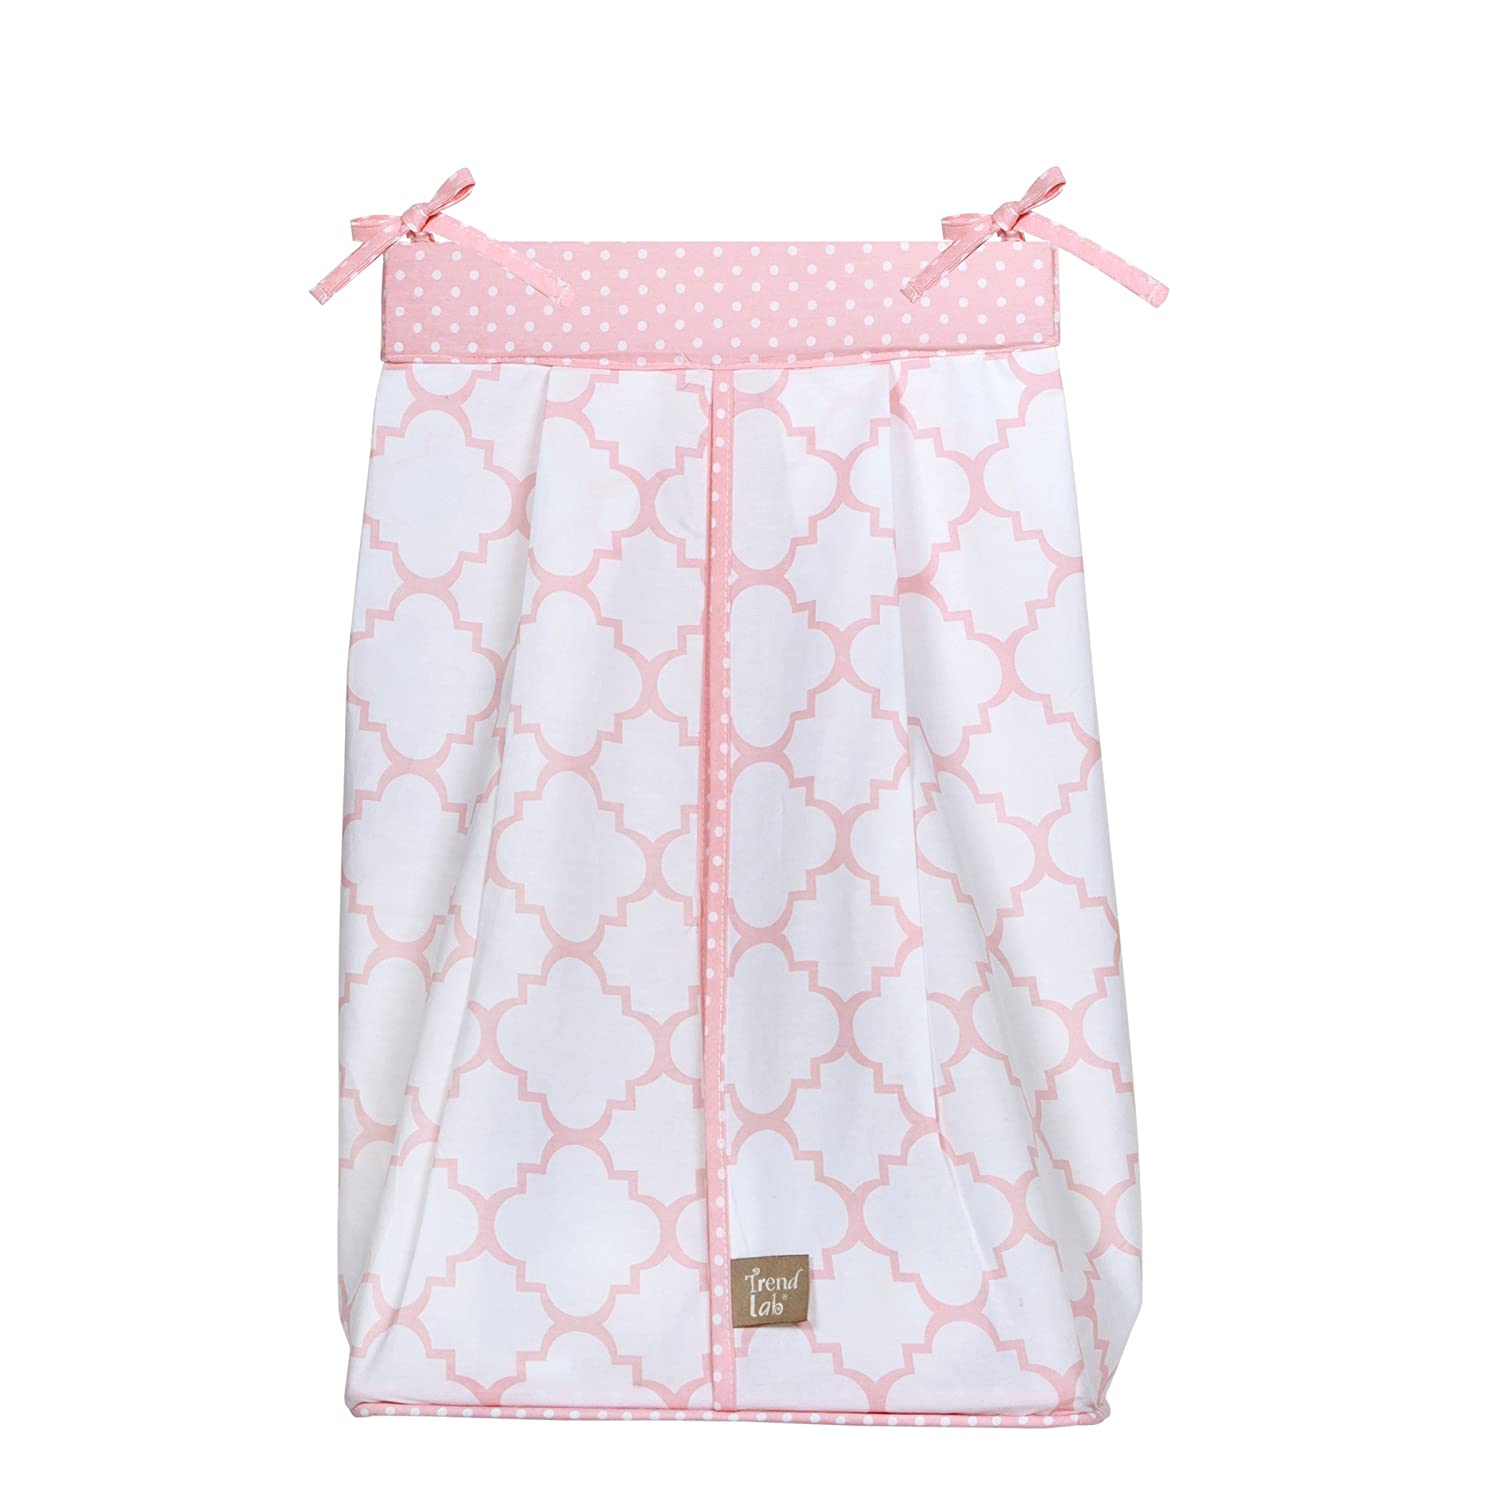 Trend Lab Pink Sky Diaper Stacker 100795